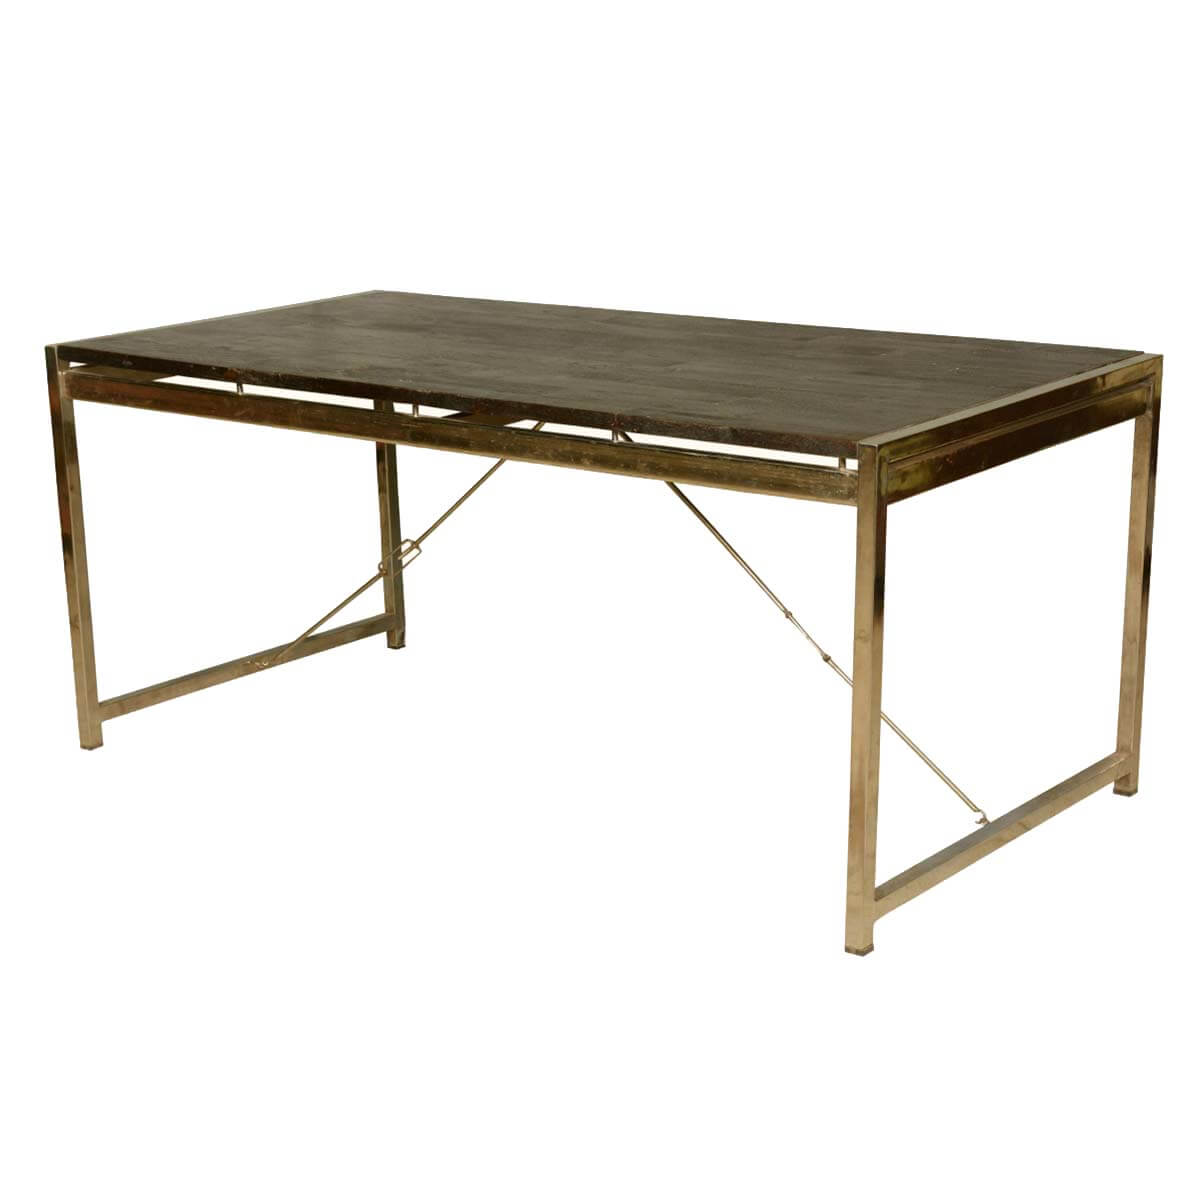 Modern Industrial Mango Wood Iron Rectangular Rustic Dining Table